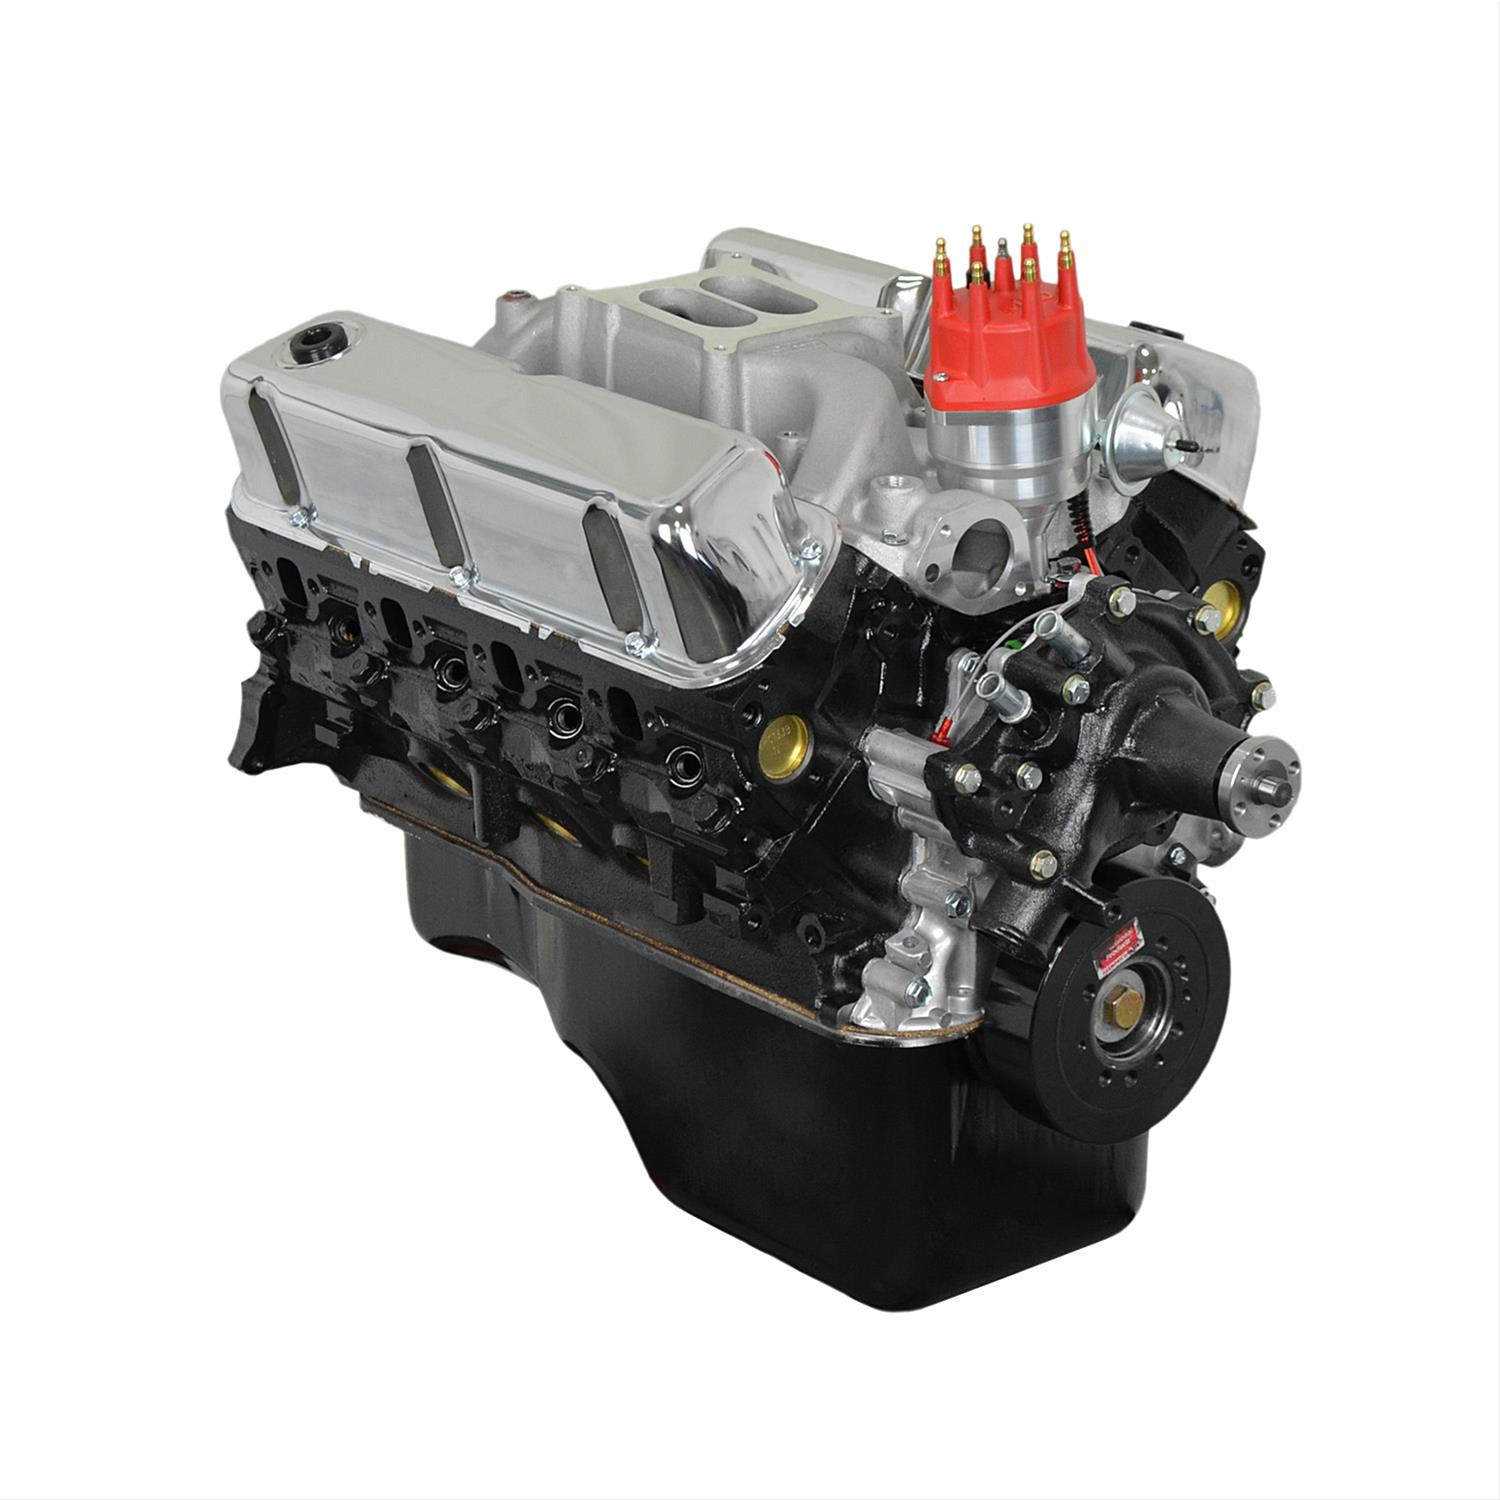 Ford 302 Engine For Sale Ontario Free Download Wiring